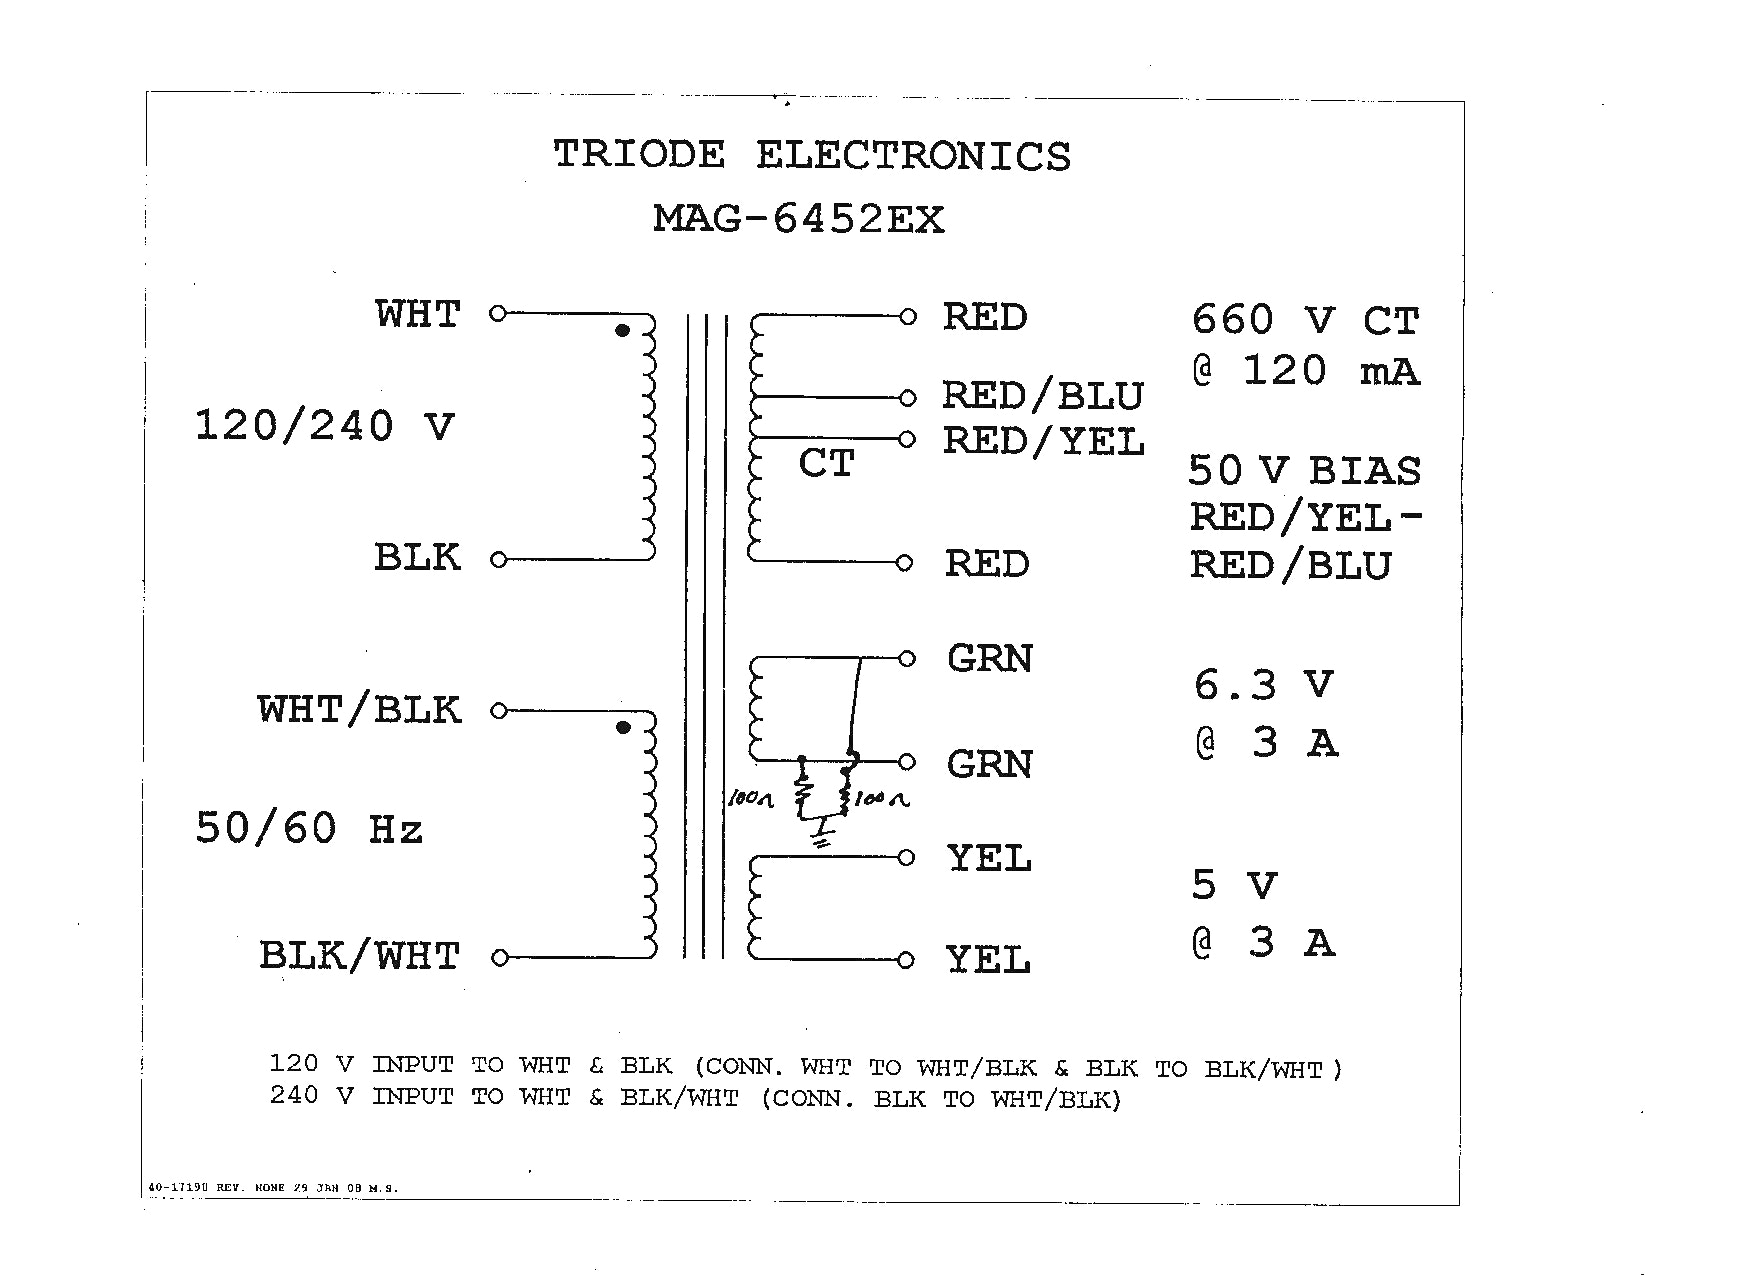 75 kva transformer wiring diagram Collection-Acme Transformers Wiring Diagrams 7-j